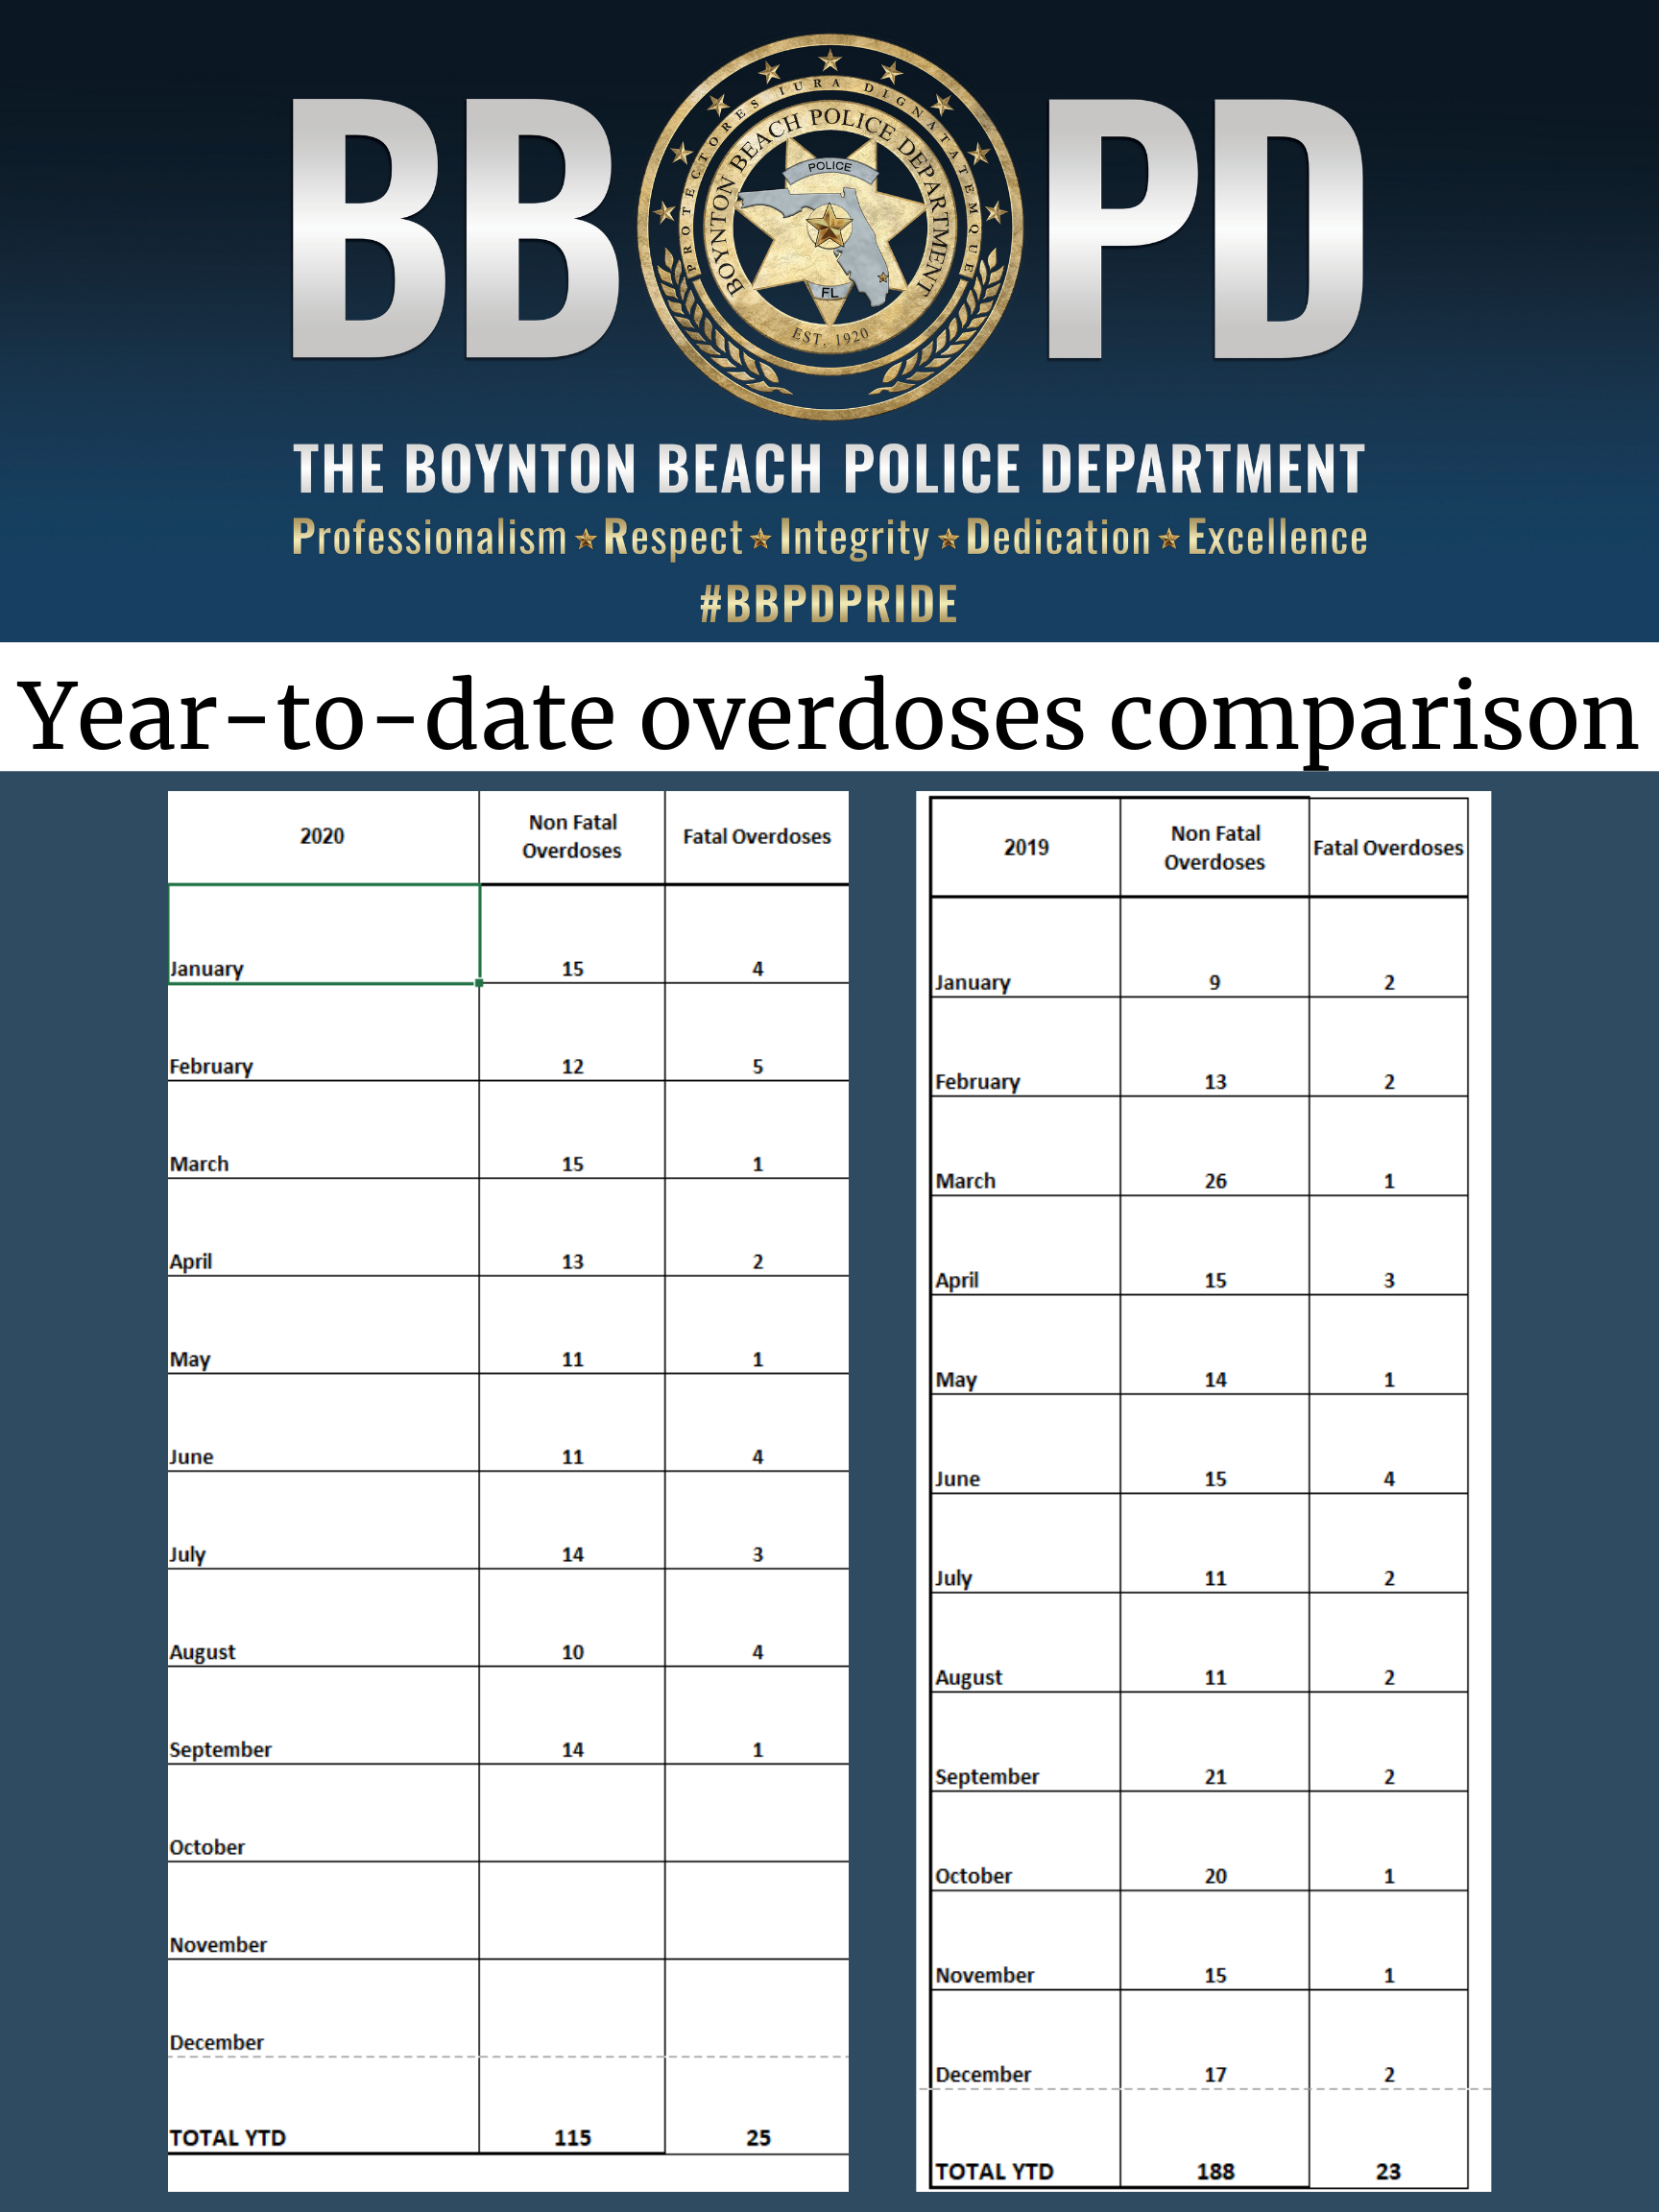 Excel spreadsheet that provides number of non-fatal and fatal overdoses for each month of 2019 and 2020